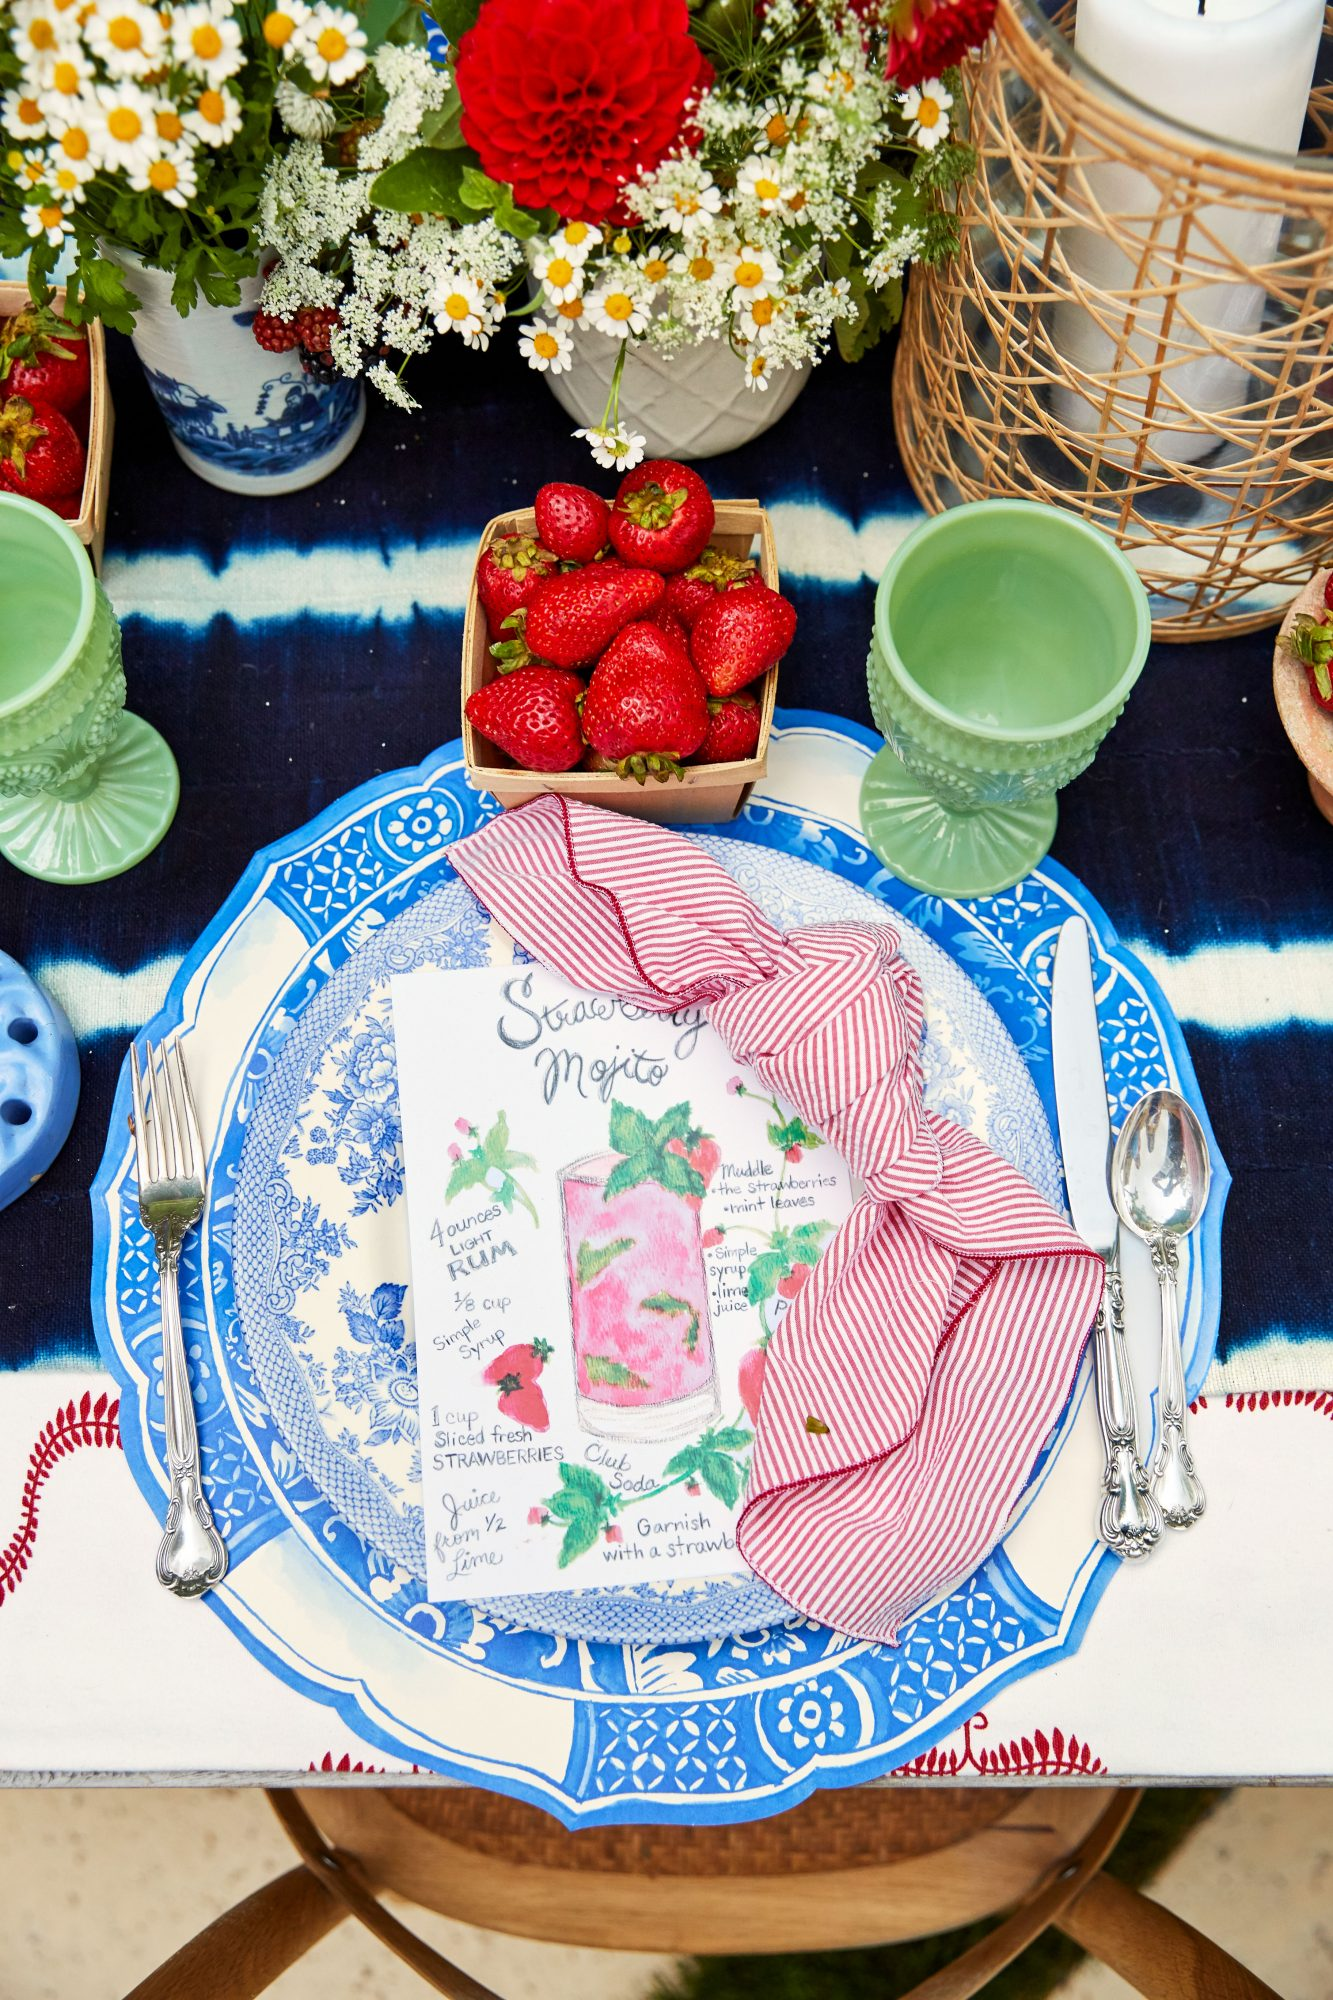 4th of July table setting with strawberries, red and white flowers, and blue paper placemats